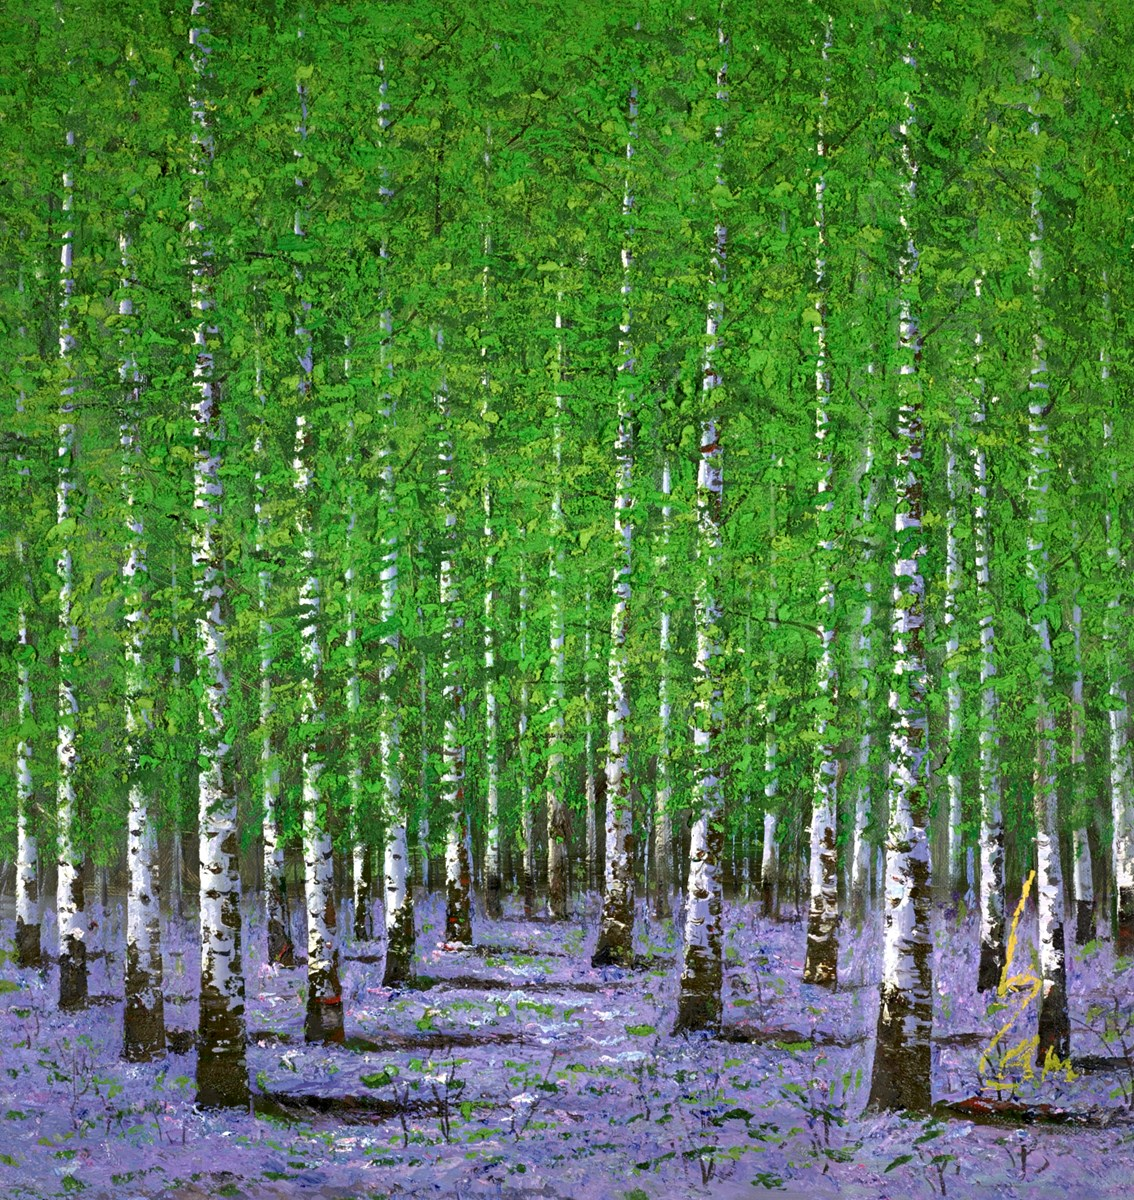 Between the Birch Trees II